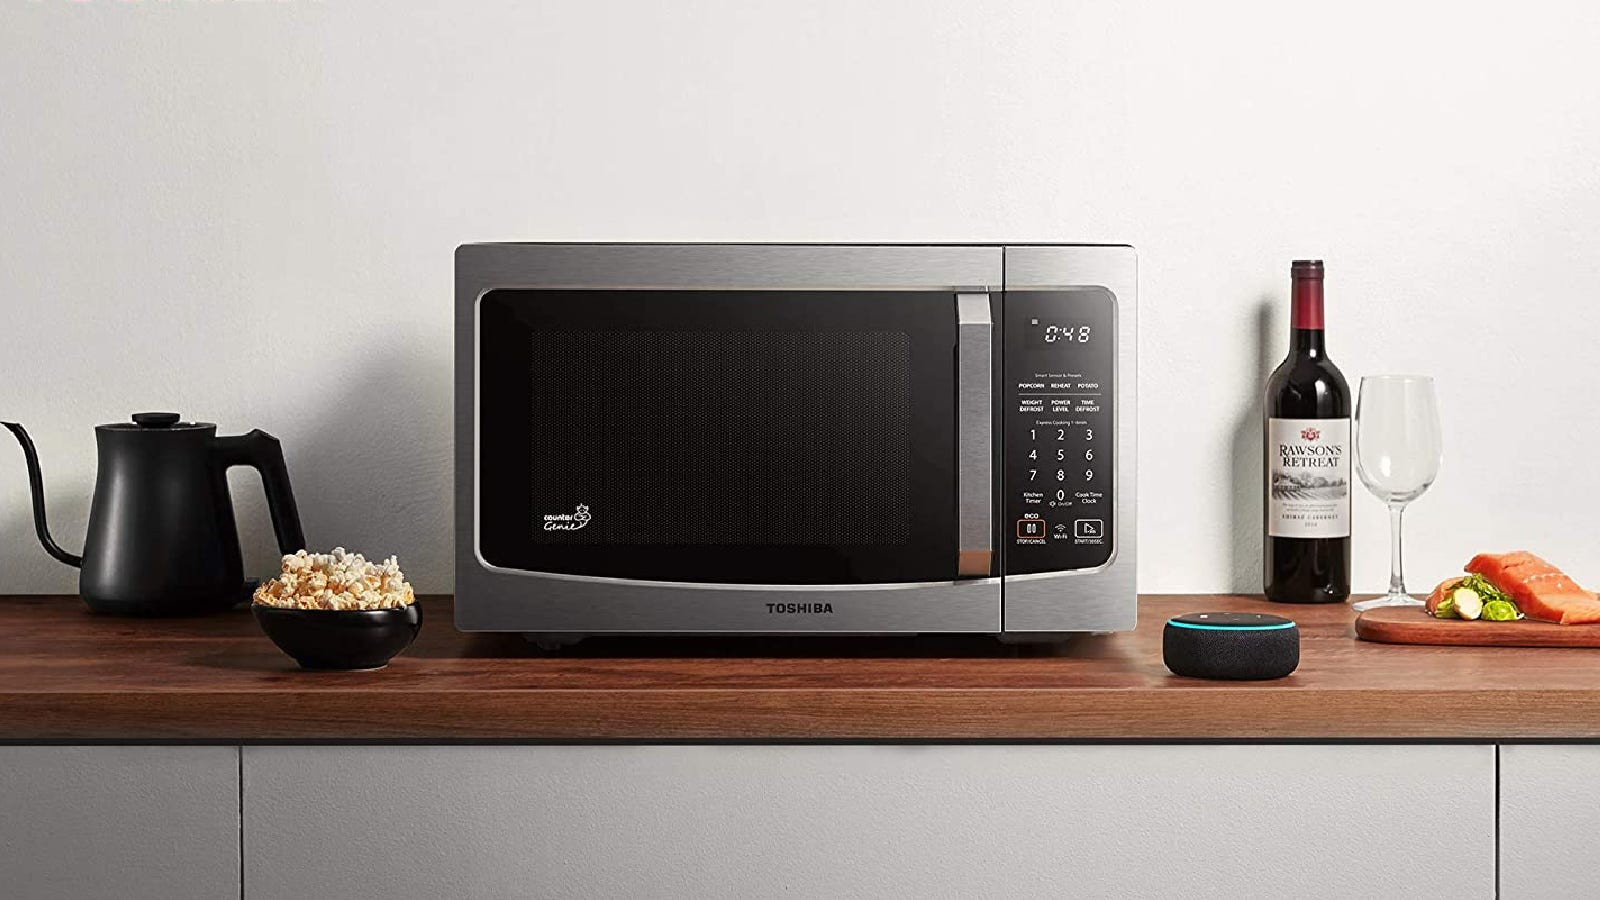 A brand new Toshiba smart microwave set up on a counter near an Alexa virtual assistant technology.